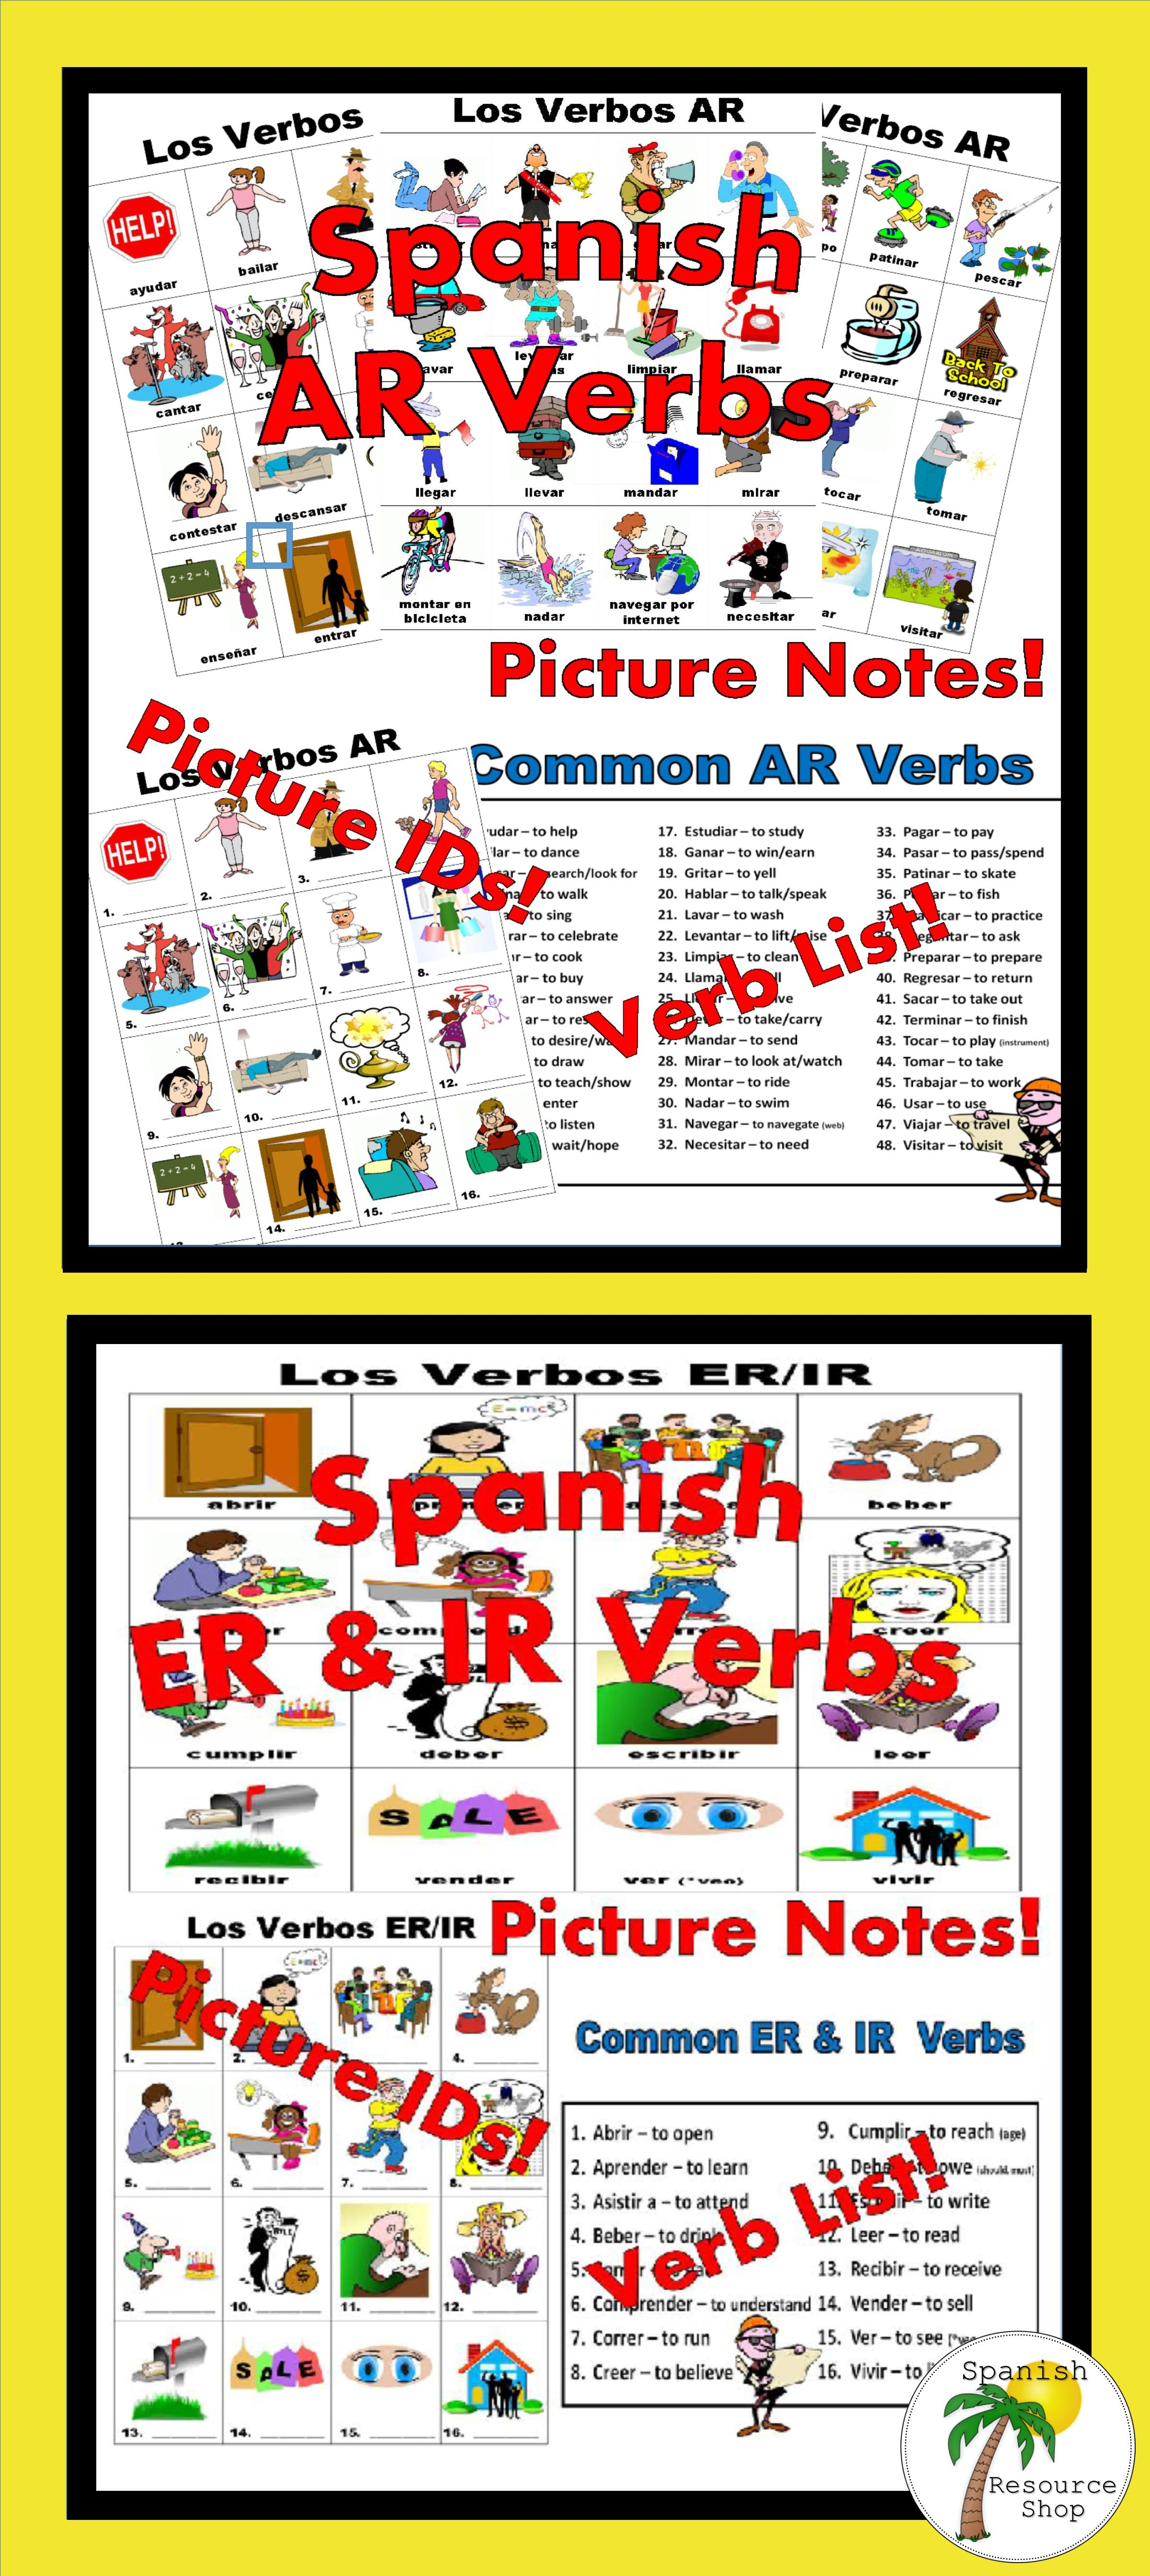 Verbs In Picture Form Help To Reinforce The Meanings Of The Words Without Translation Spanish Resources Spanish Lessons Teaching Spanish [ 5376 x 2400 Pixel ]